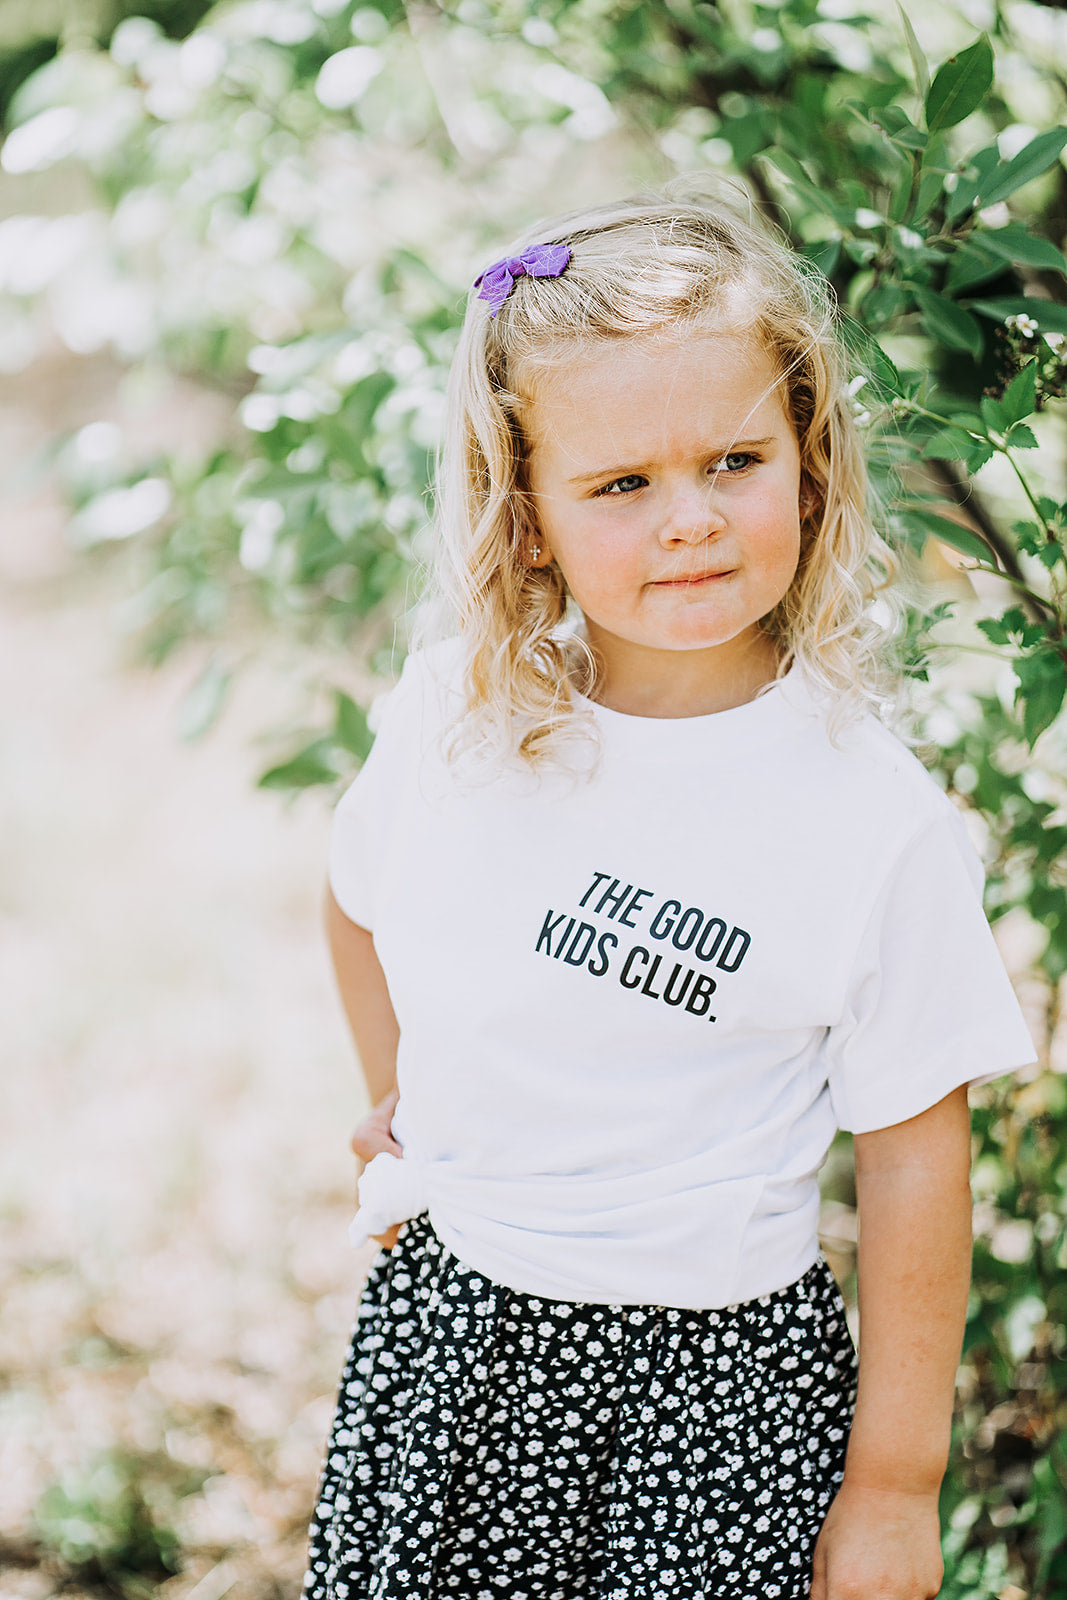 The Good Kids Club - Baby/Toddler Tee